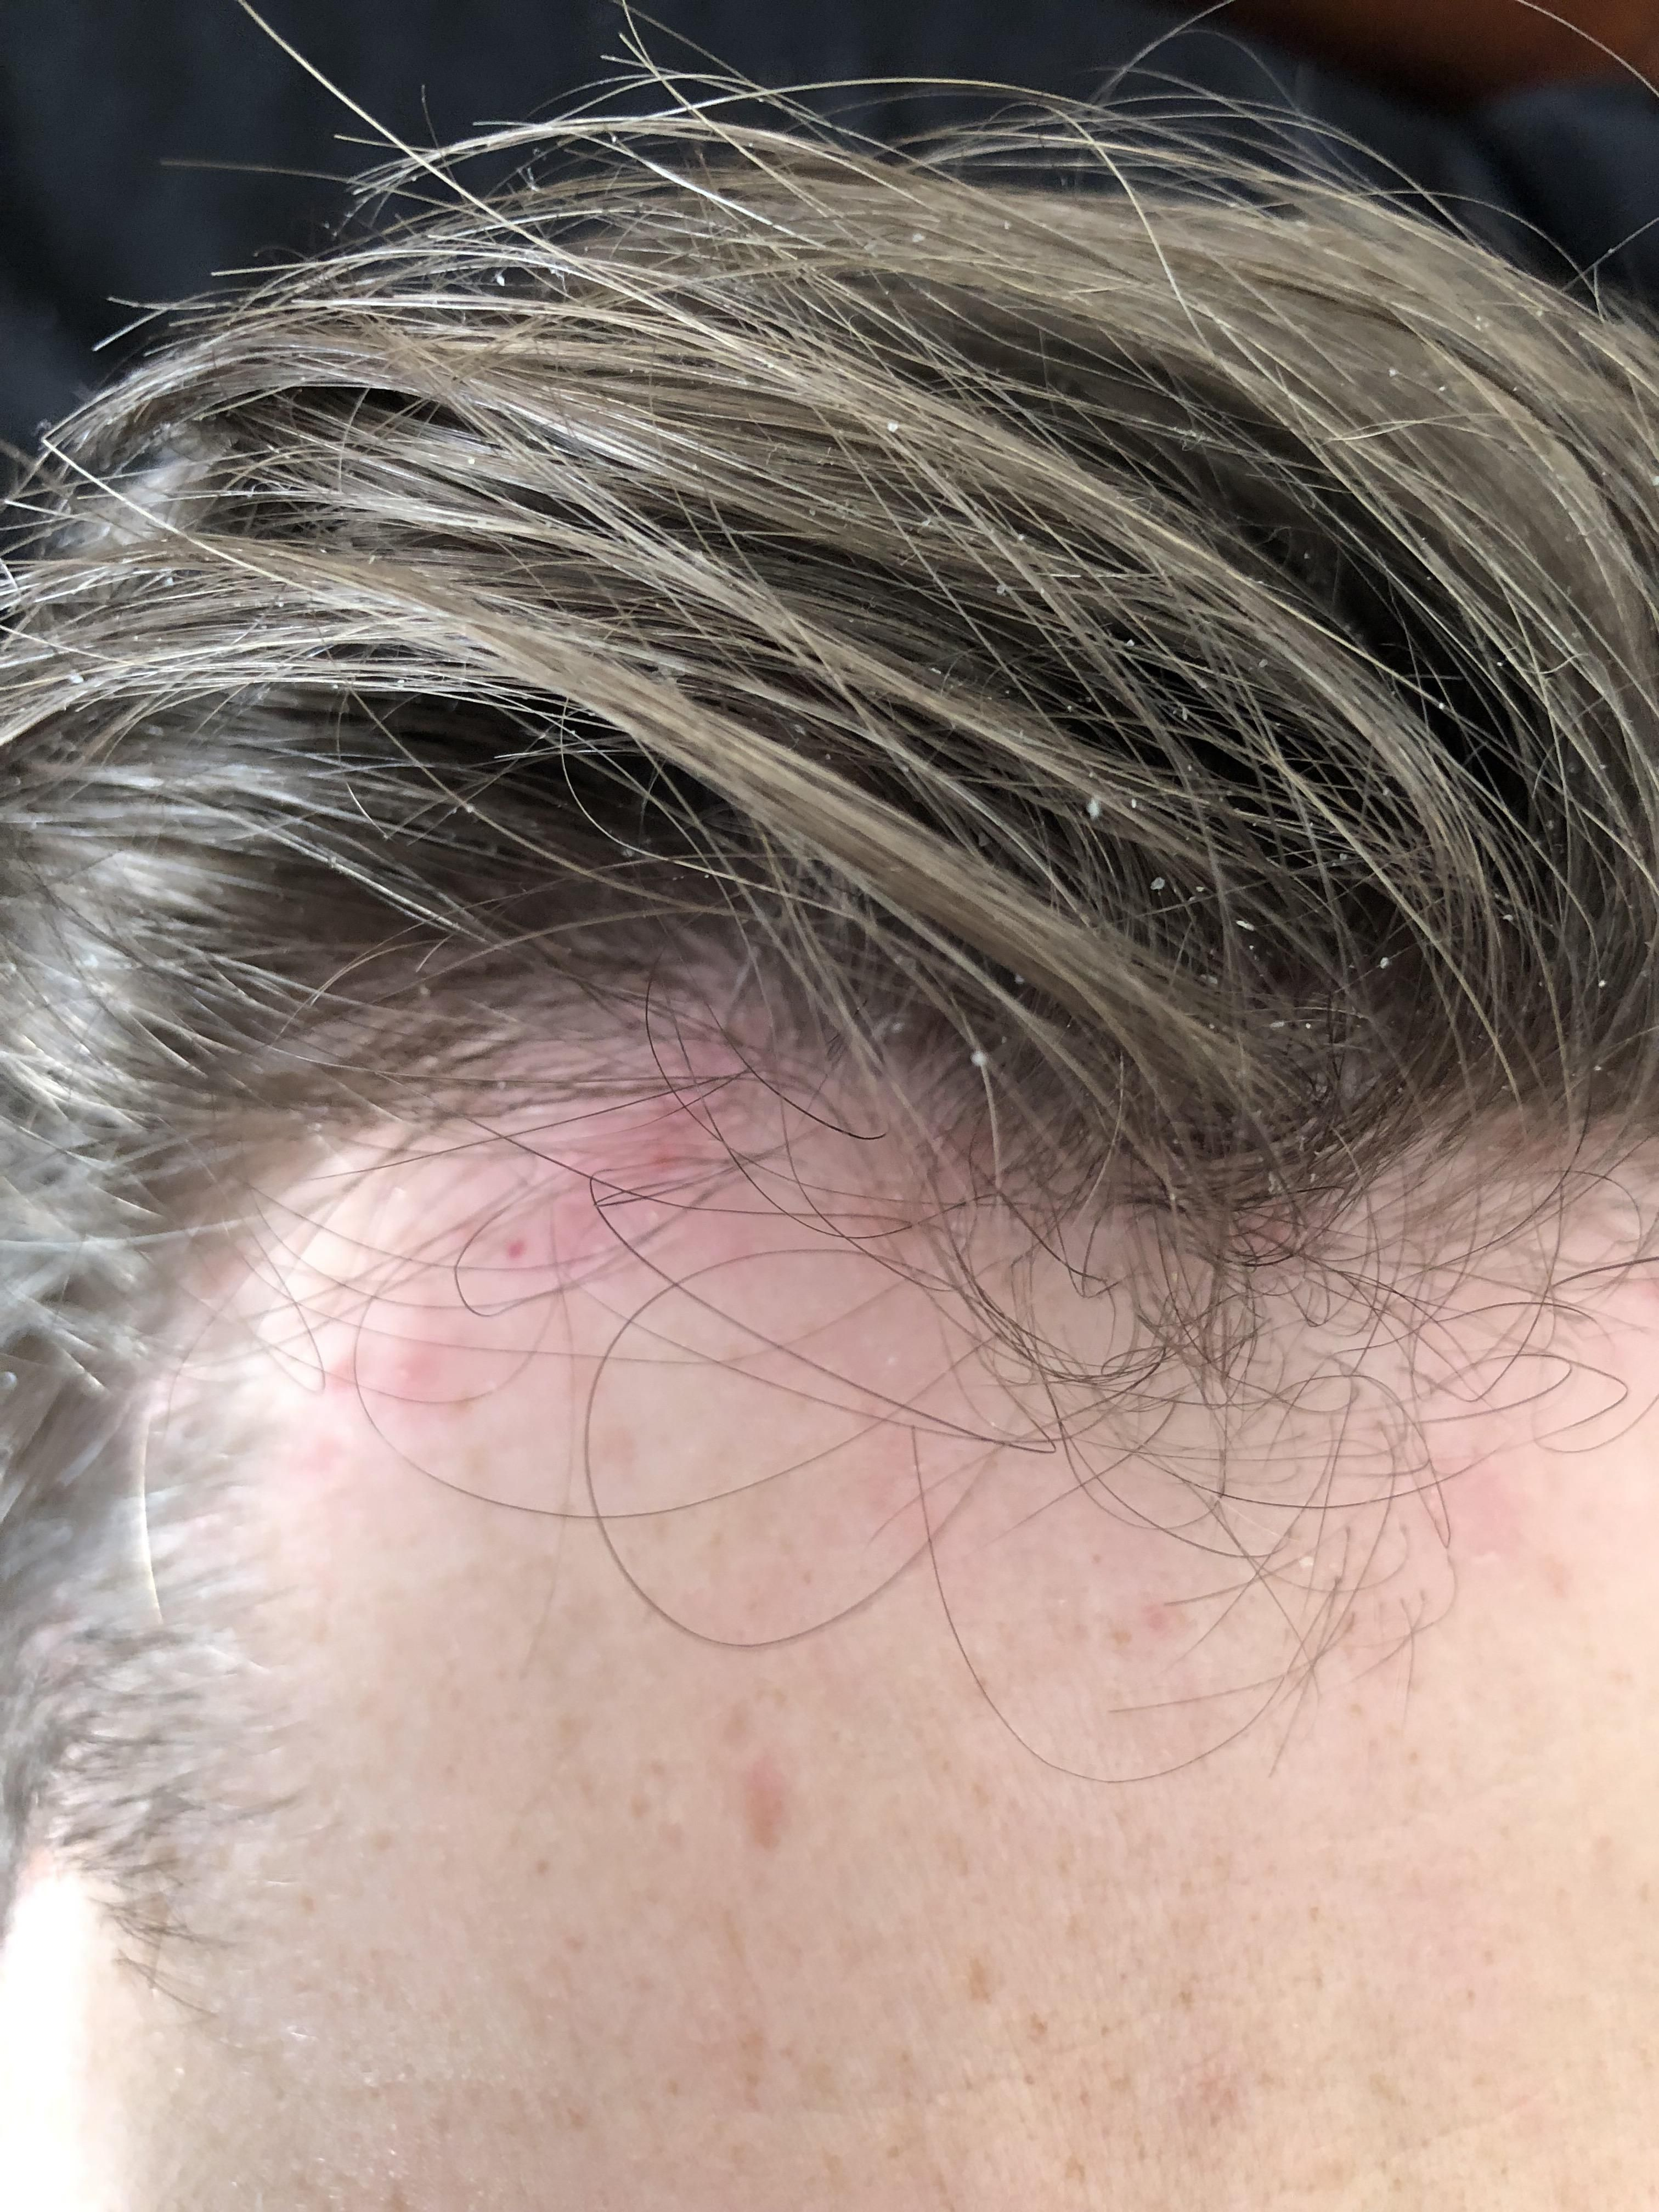 My Boyfriend Keeps Getting This Rash Near His Hairline And Is Also Experiencing Some Dandruff Picture Below Im Looking For Hairline Dandruff Sensitive Skin